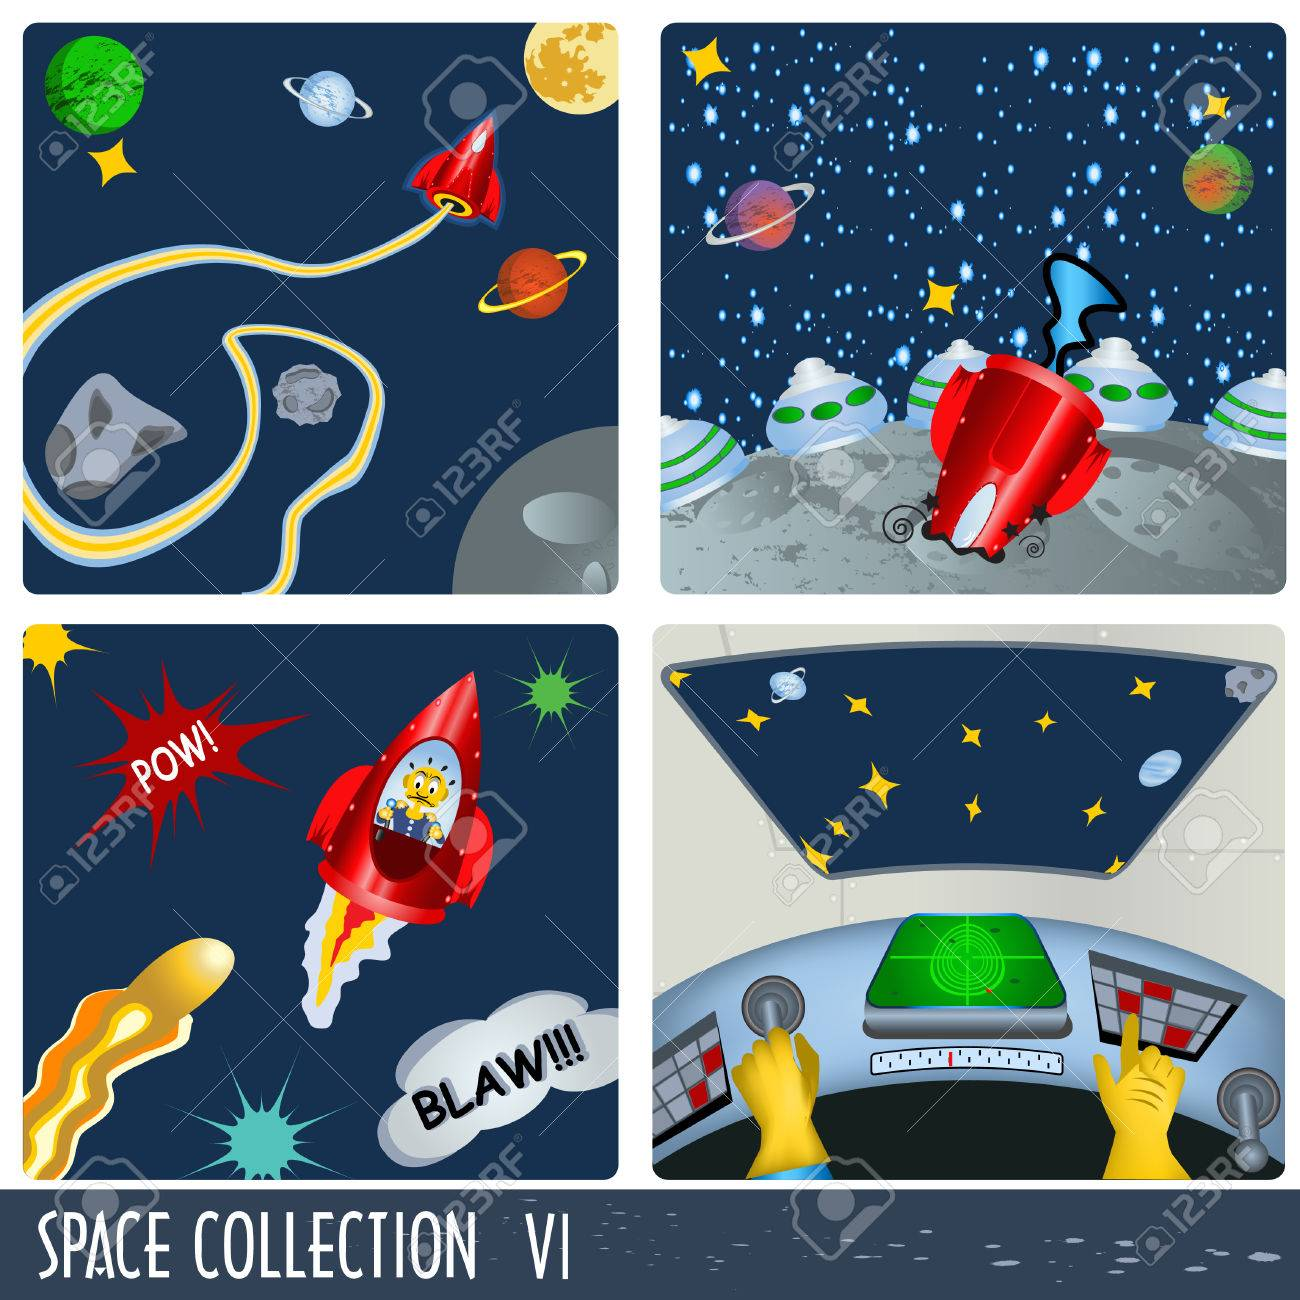 Space collection 6, astronauts in different situations. - 7355311